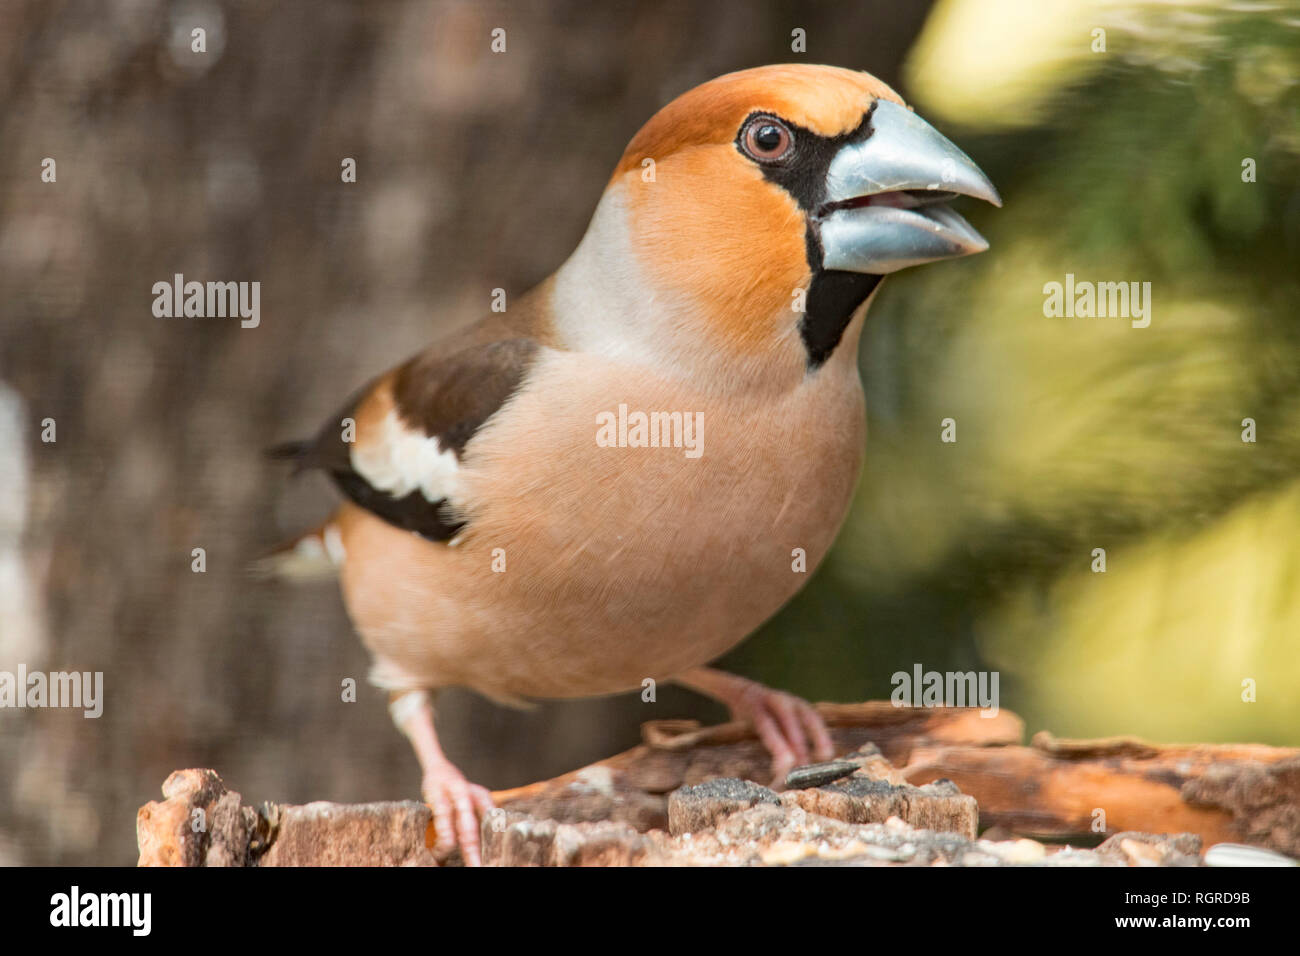 hawfinch, (Coccothraustes coccothraustes) - Stock Image